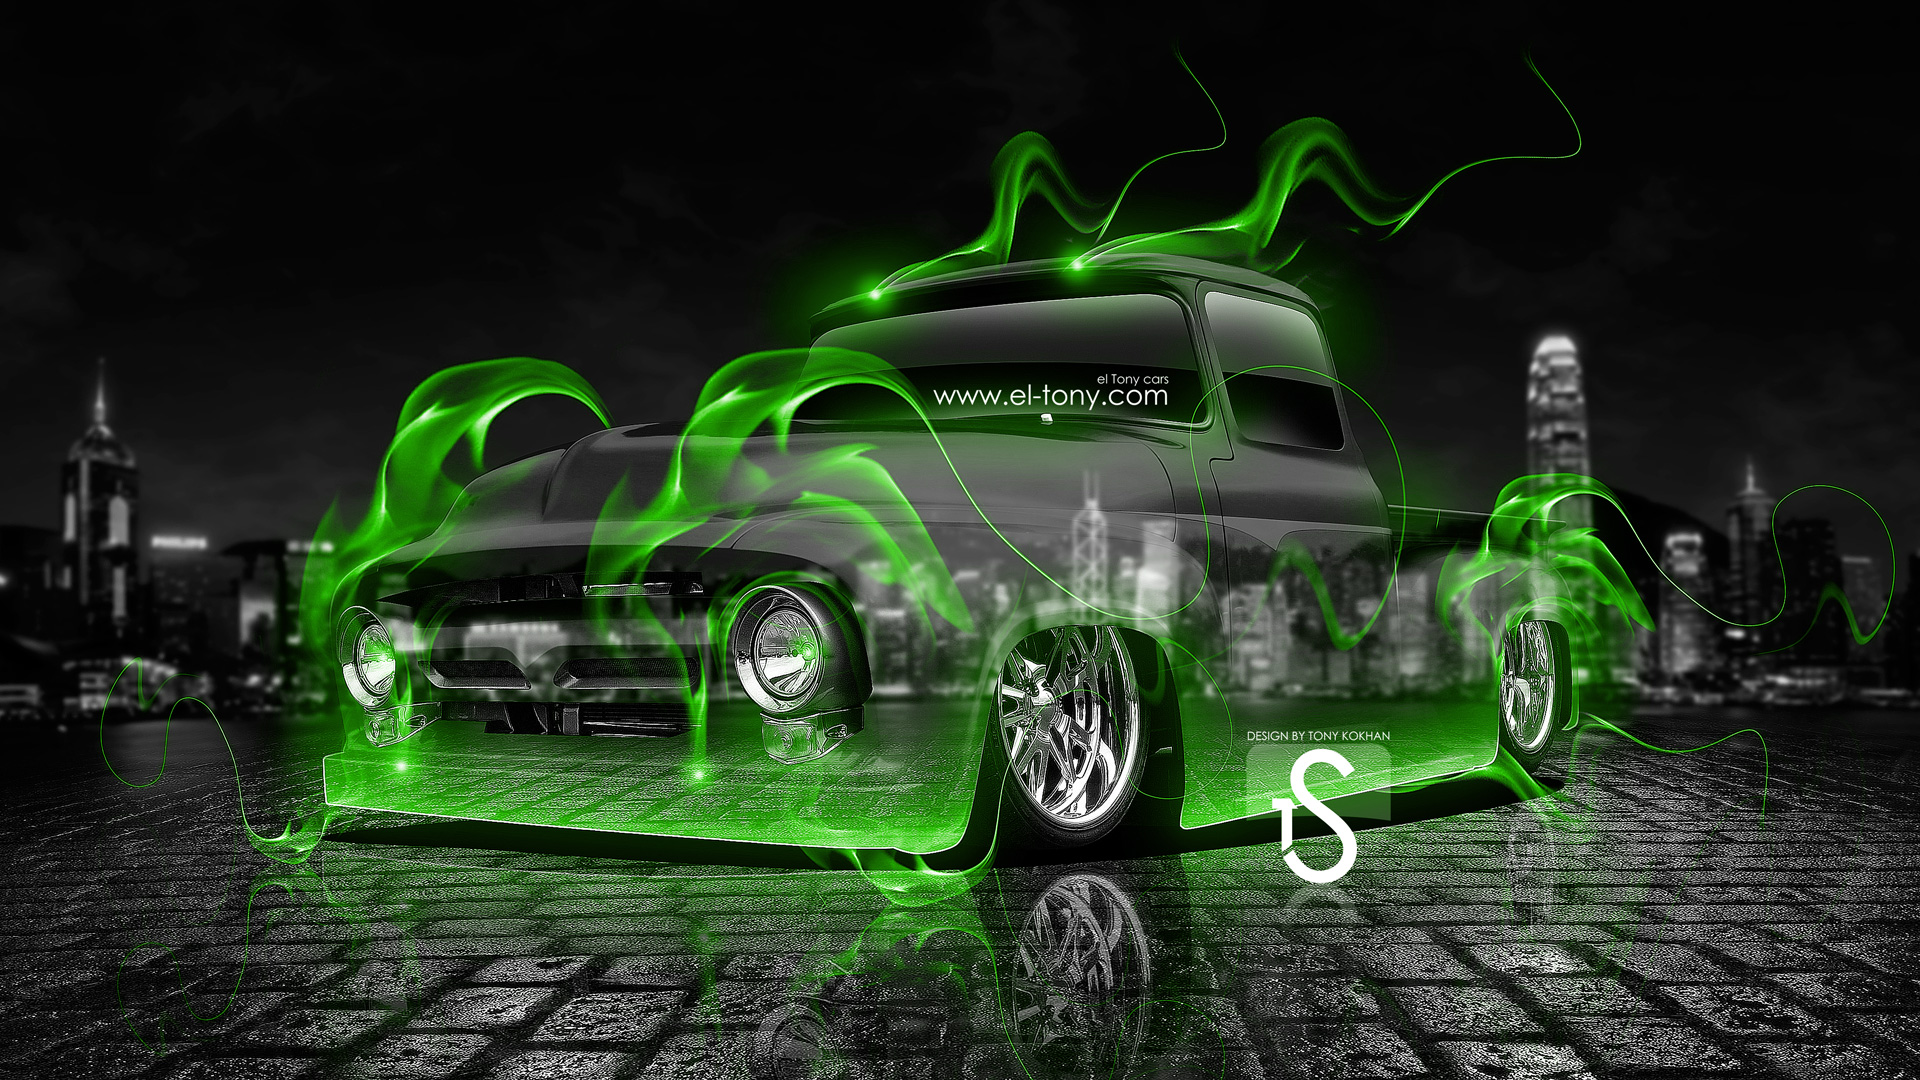 Superieur Ford F100 Truck Green Fire Crystal Car 2013  ...